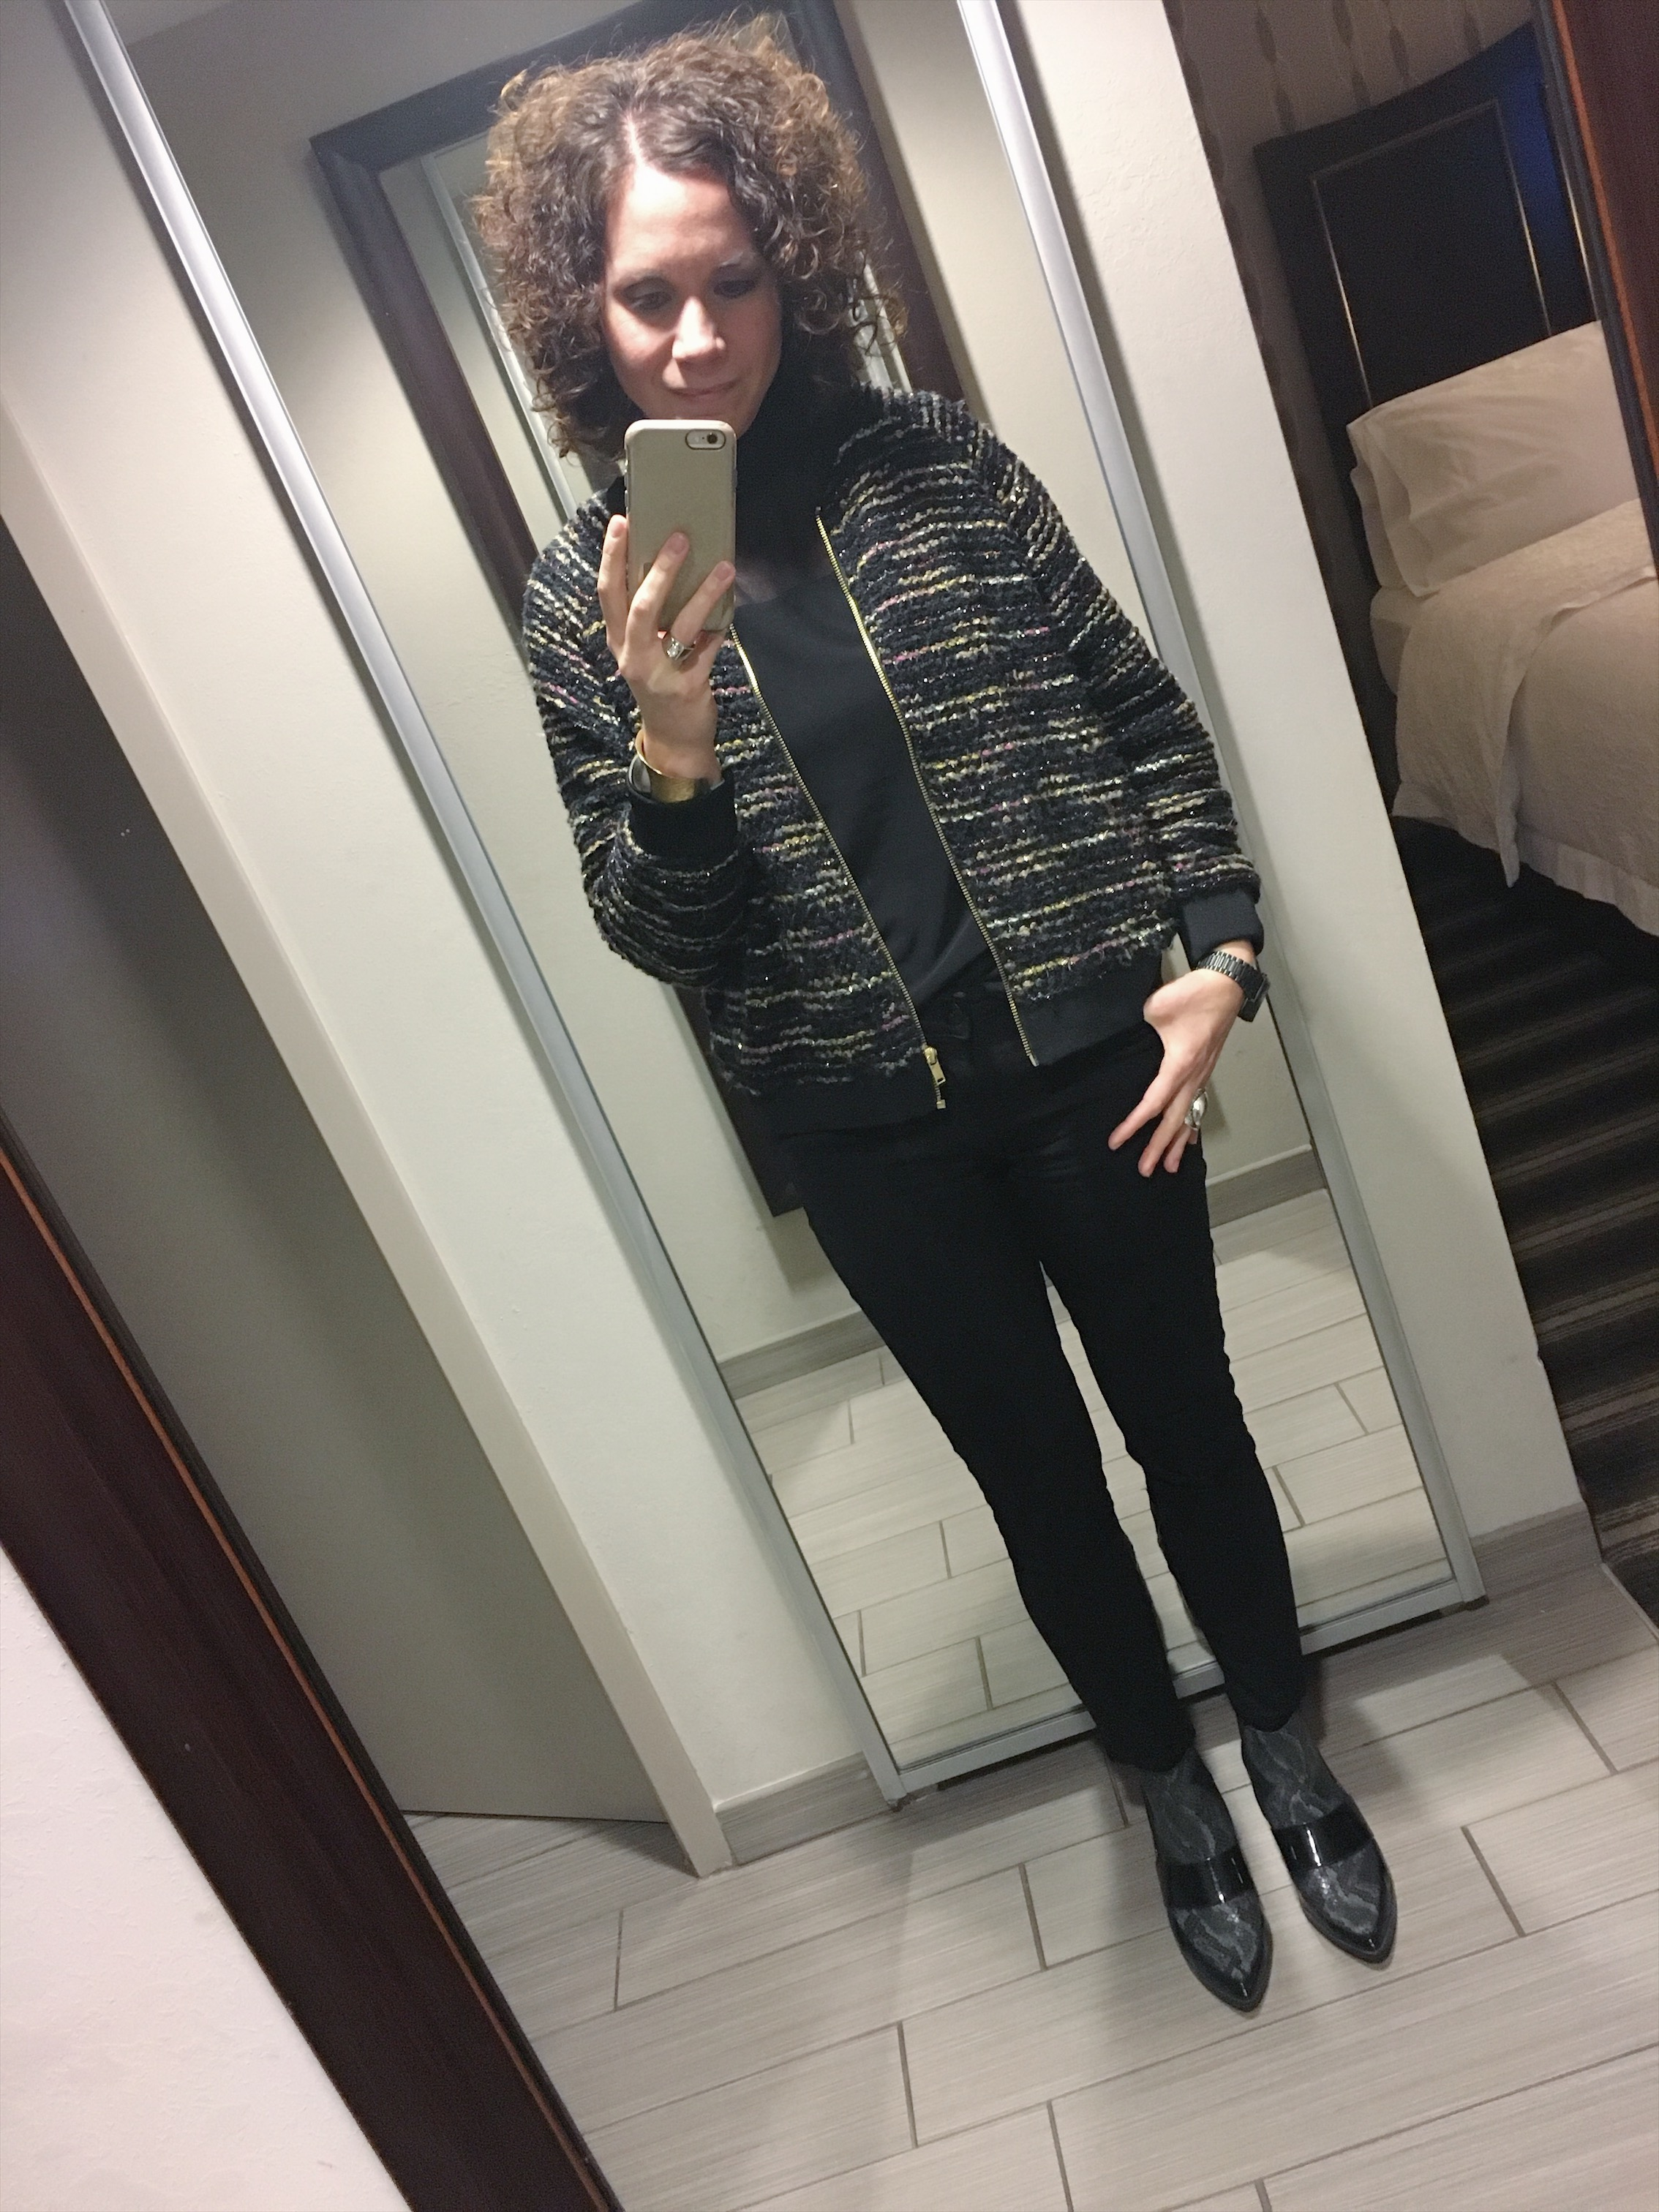 Bomber is  H&M  / Turtleneck is from  Knuth's  in Cleveland, Ohio / Jeans are  DL 1971  from  SOCA Clothing  / Chelsea boots are  ASOS  / Cuff and ring are  Margaret Ellis Jewelry